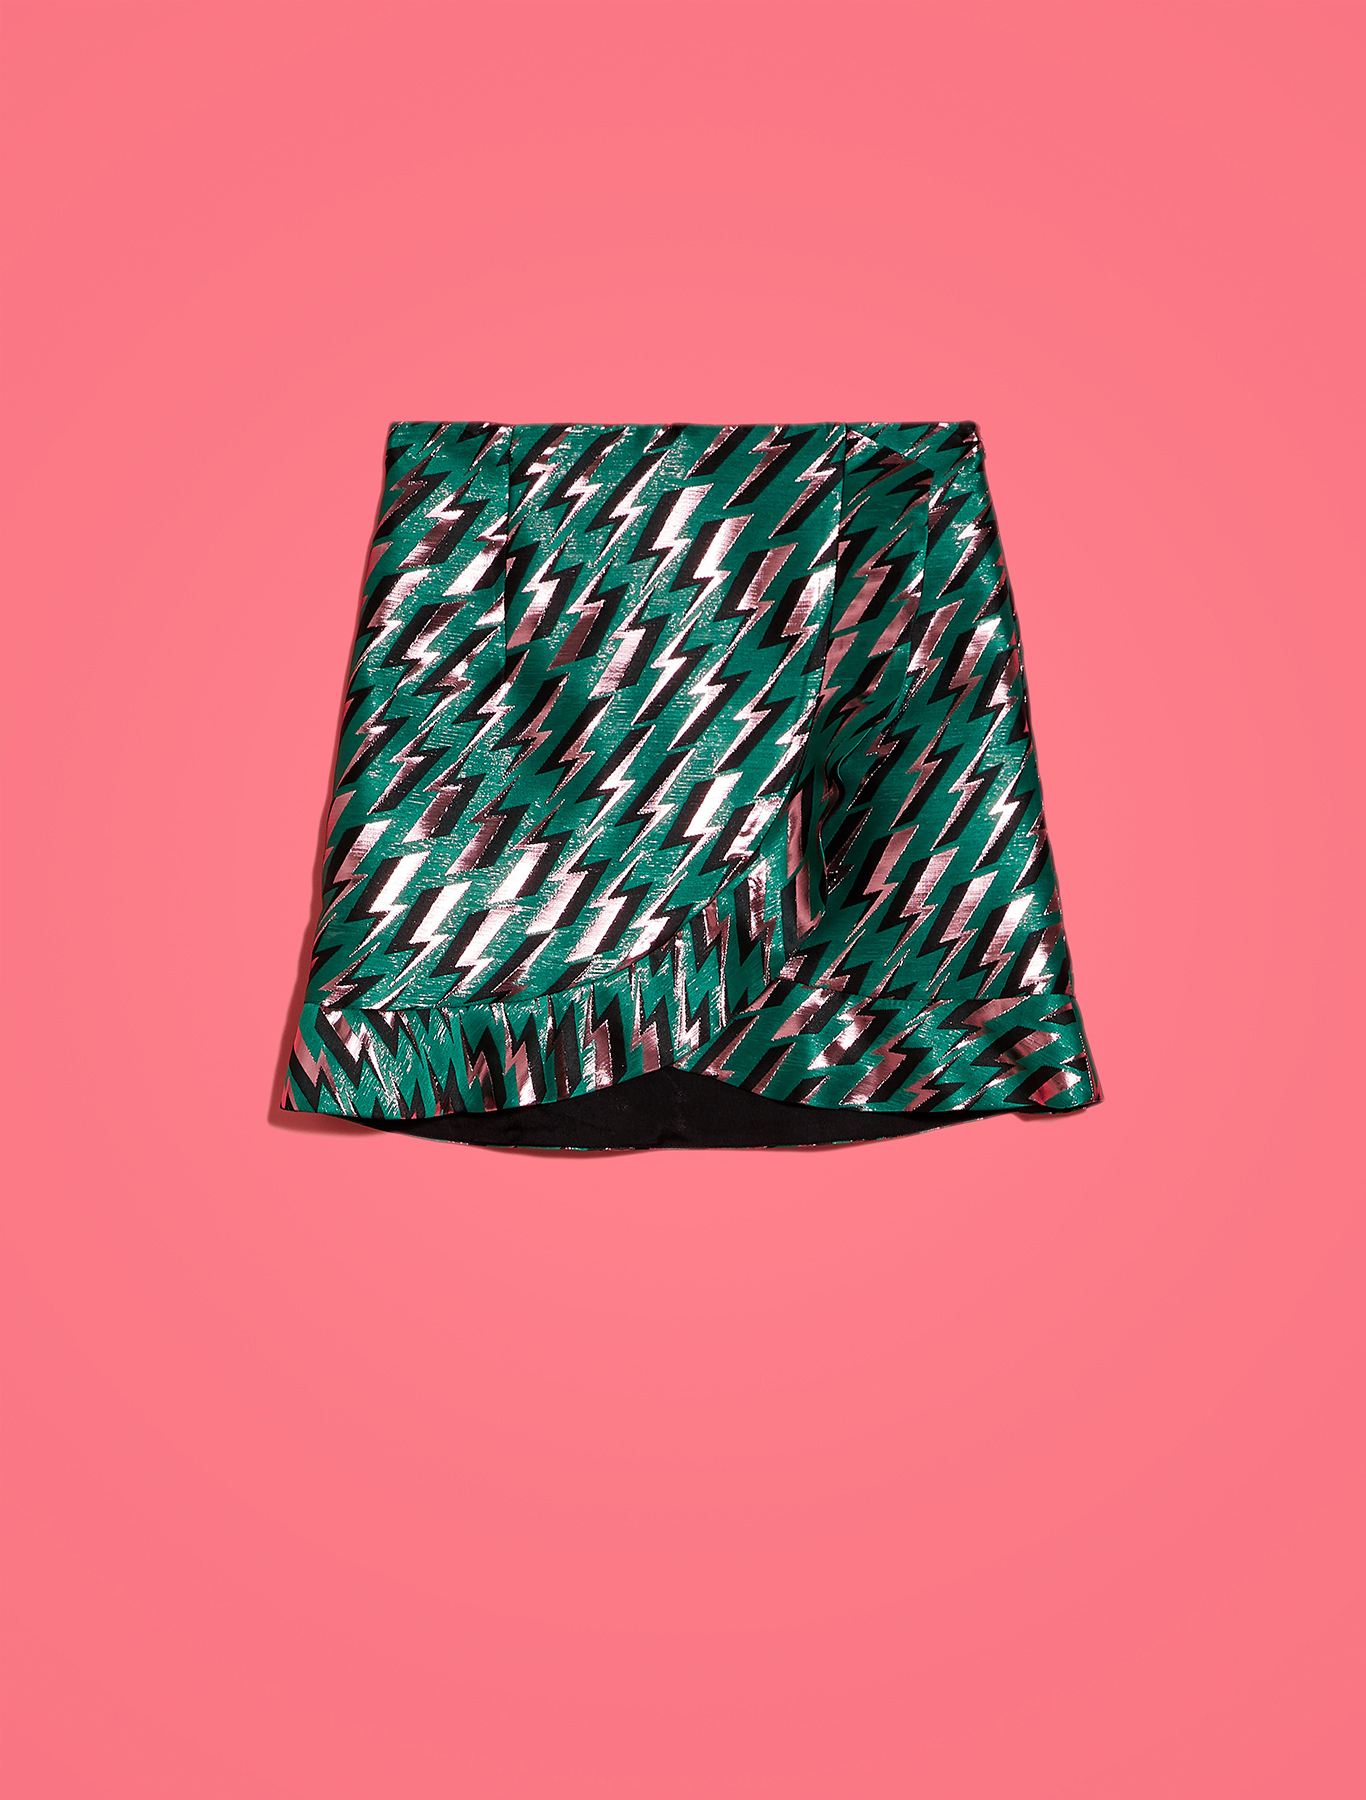 Electric Feel by Spiros Halaris lamé skirt - green pattern - pennyblack